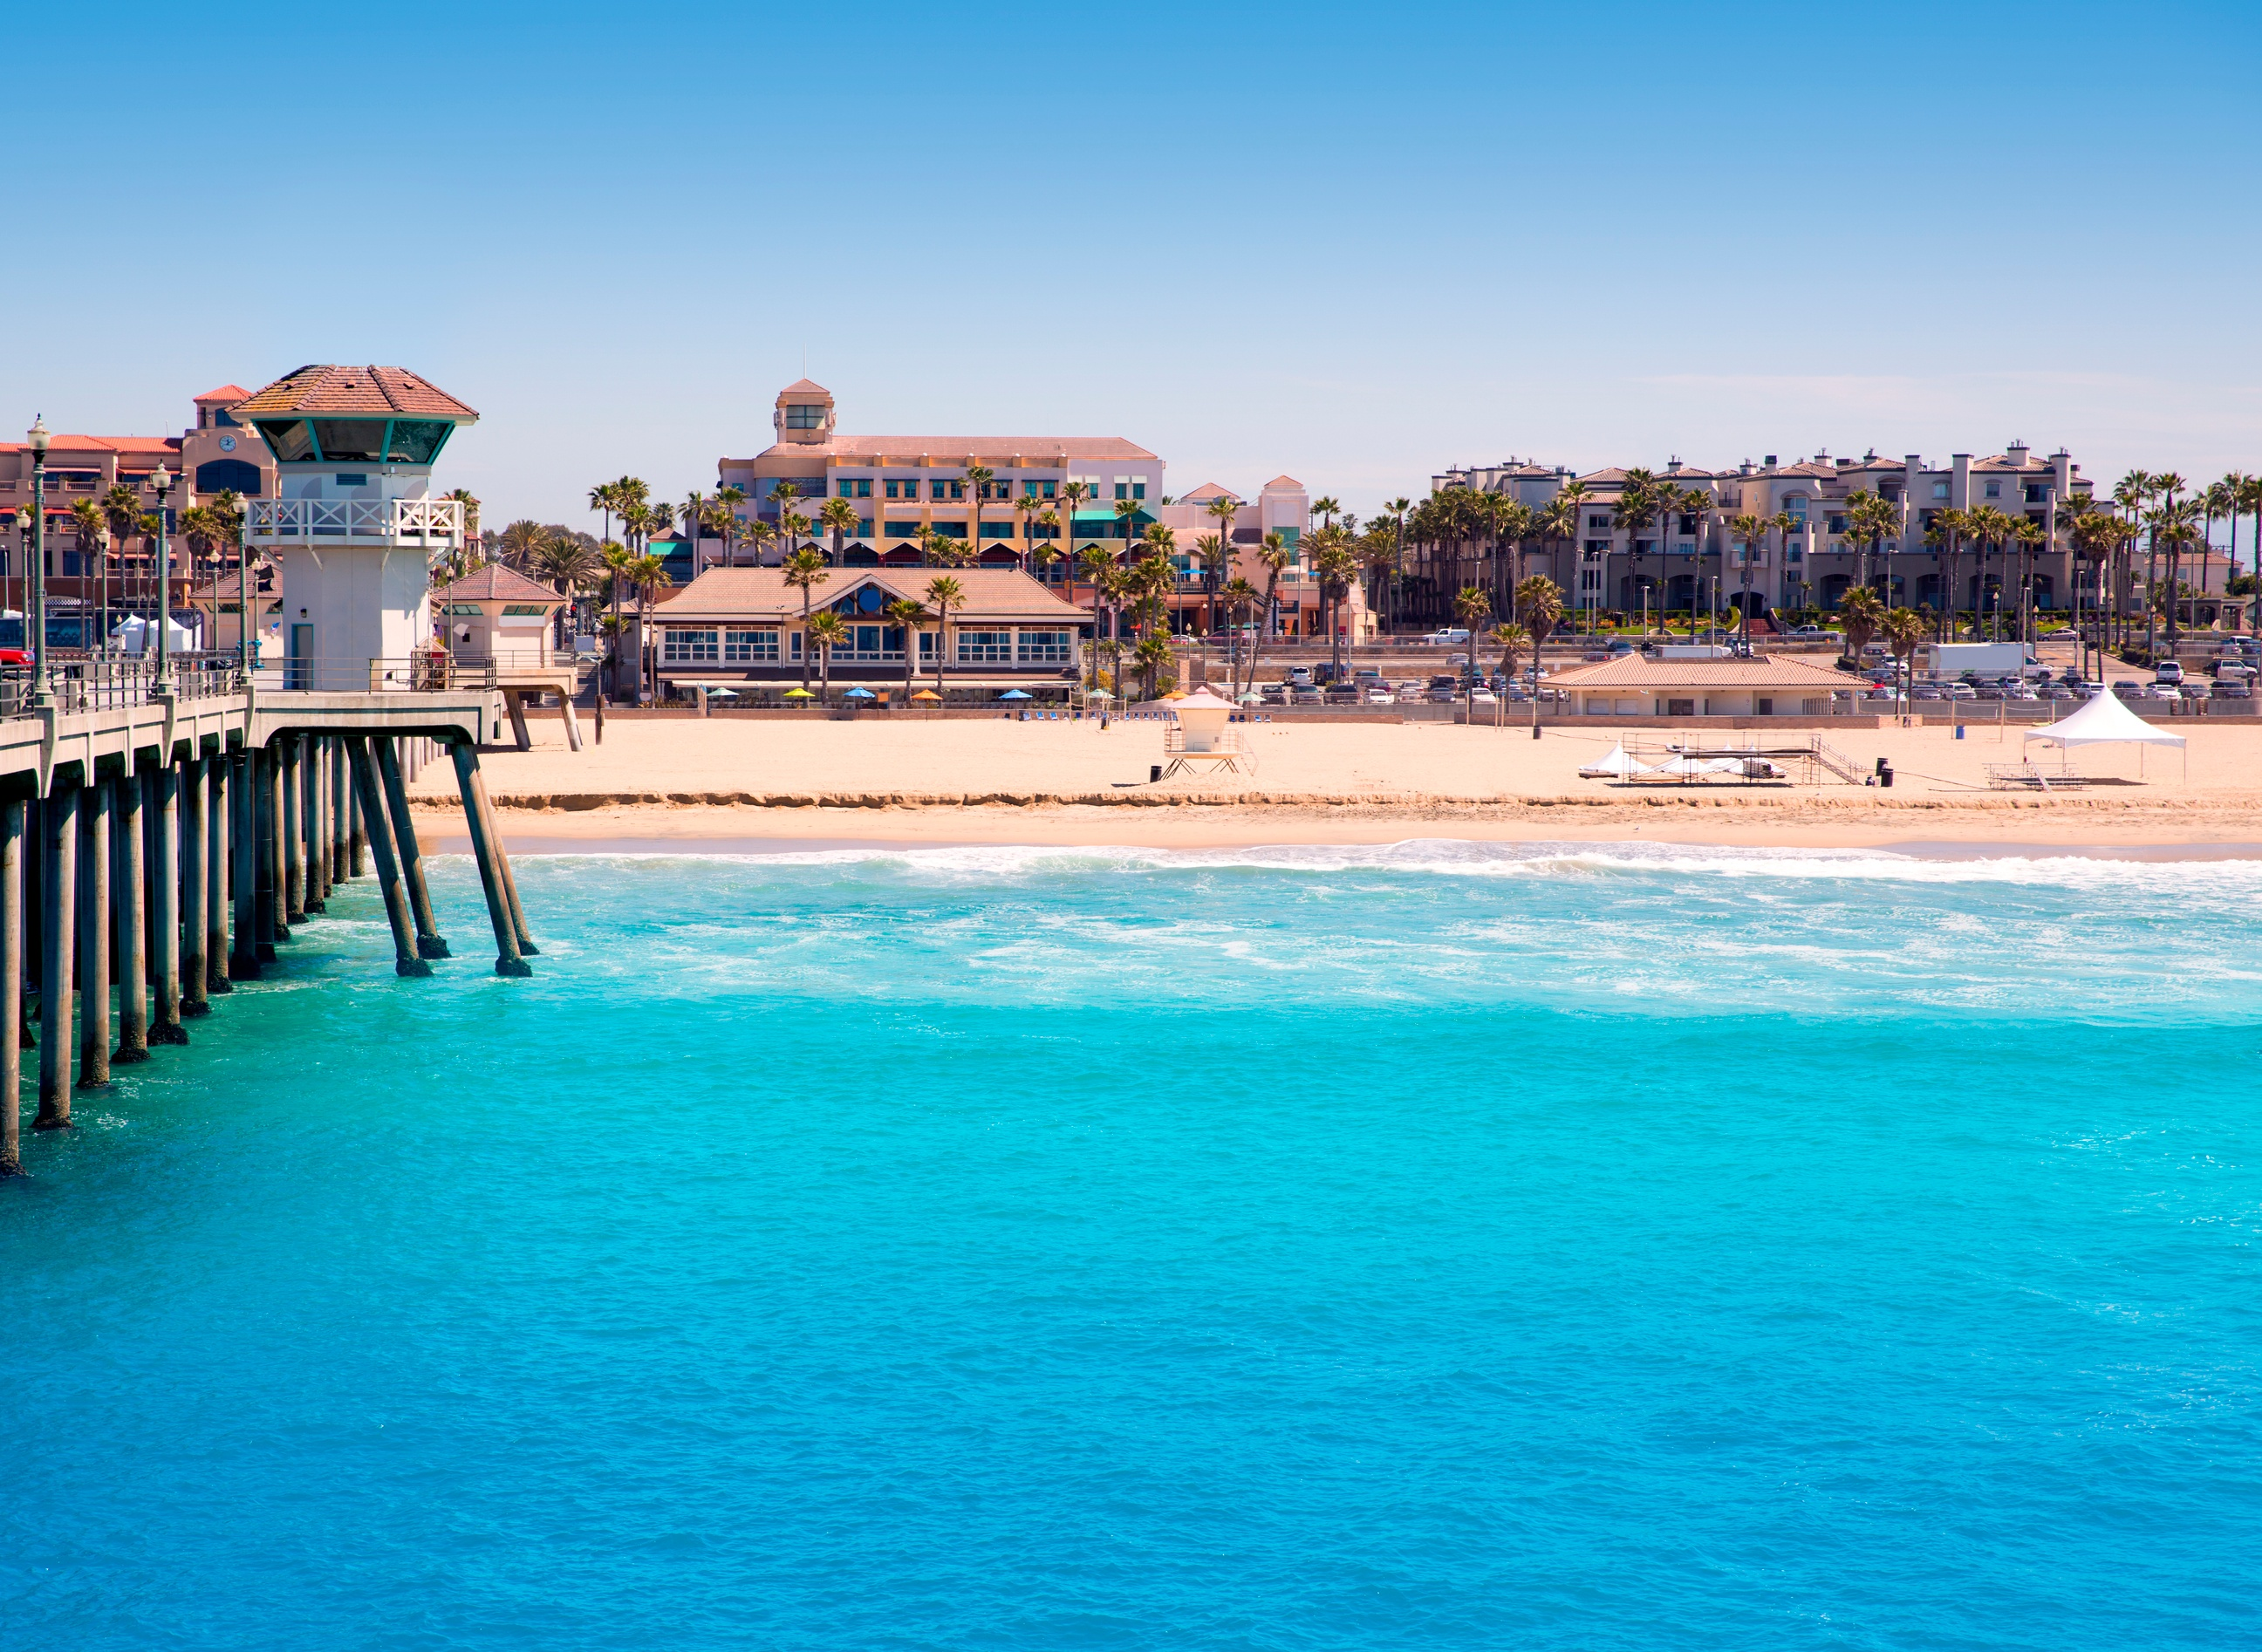 Huntington_Beach-1.jpg